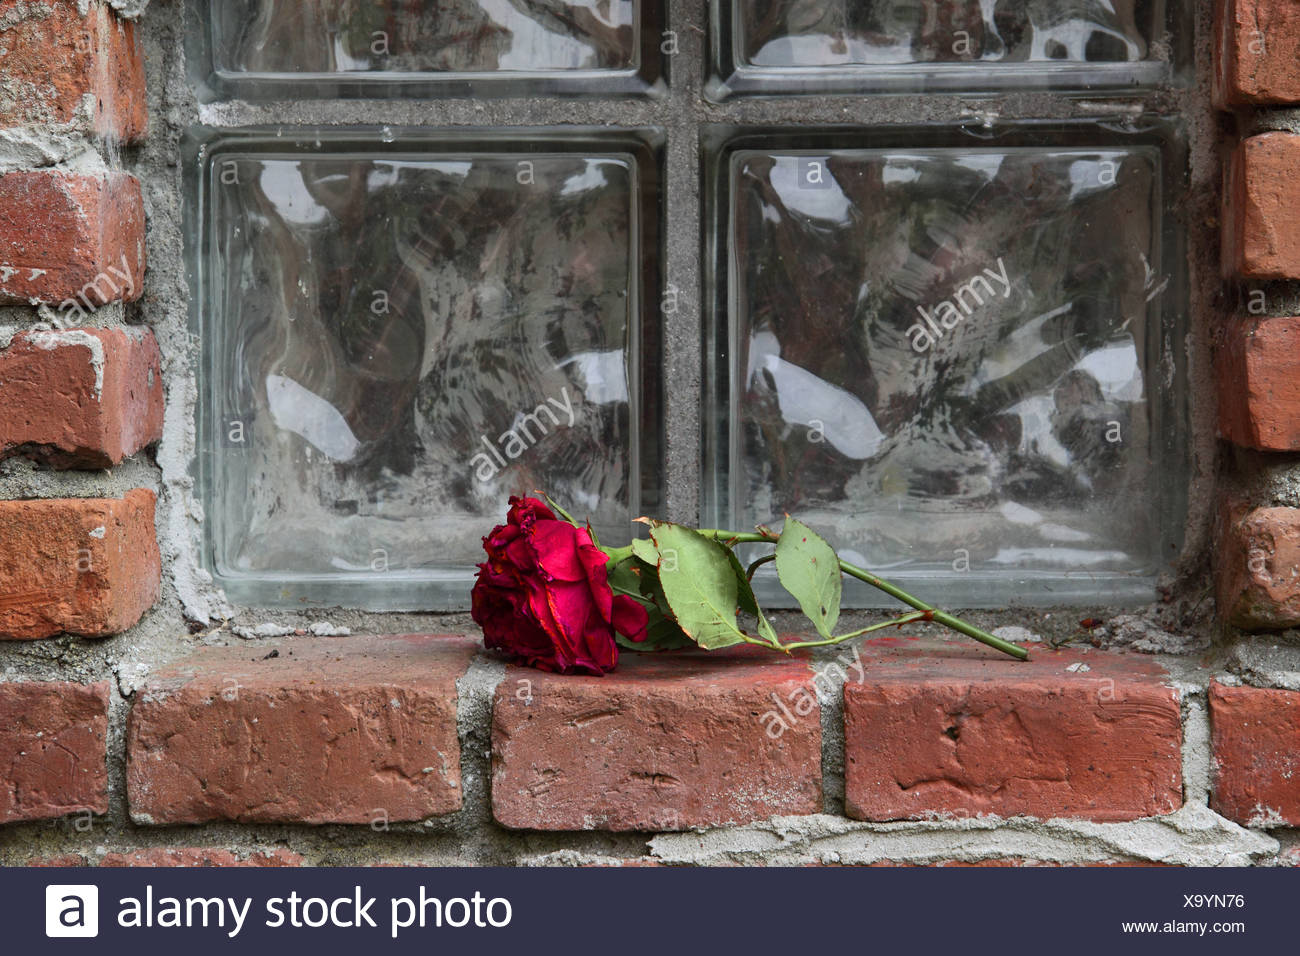 forgotten love - Stock Image